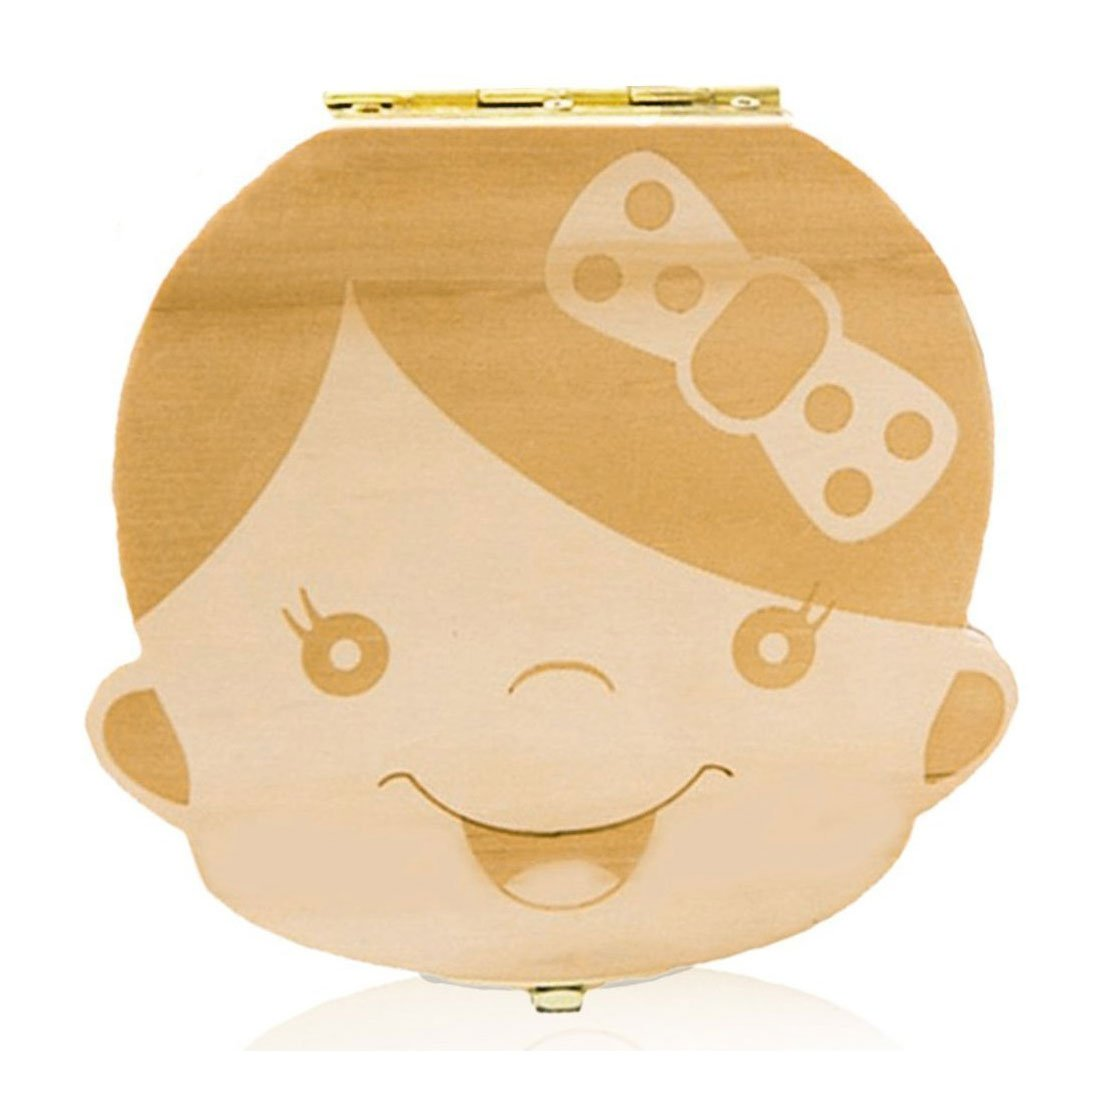 Baby Teeth Storage Box Cute Wooden Tooth Organizer Keepsake Boxes Handmade Souvenir Case for Kids (Girl's) JoinPro